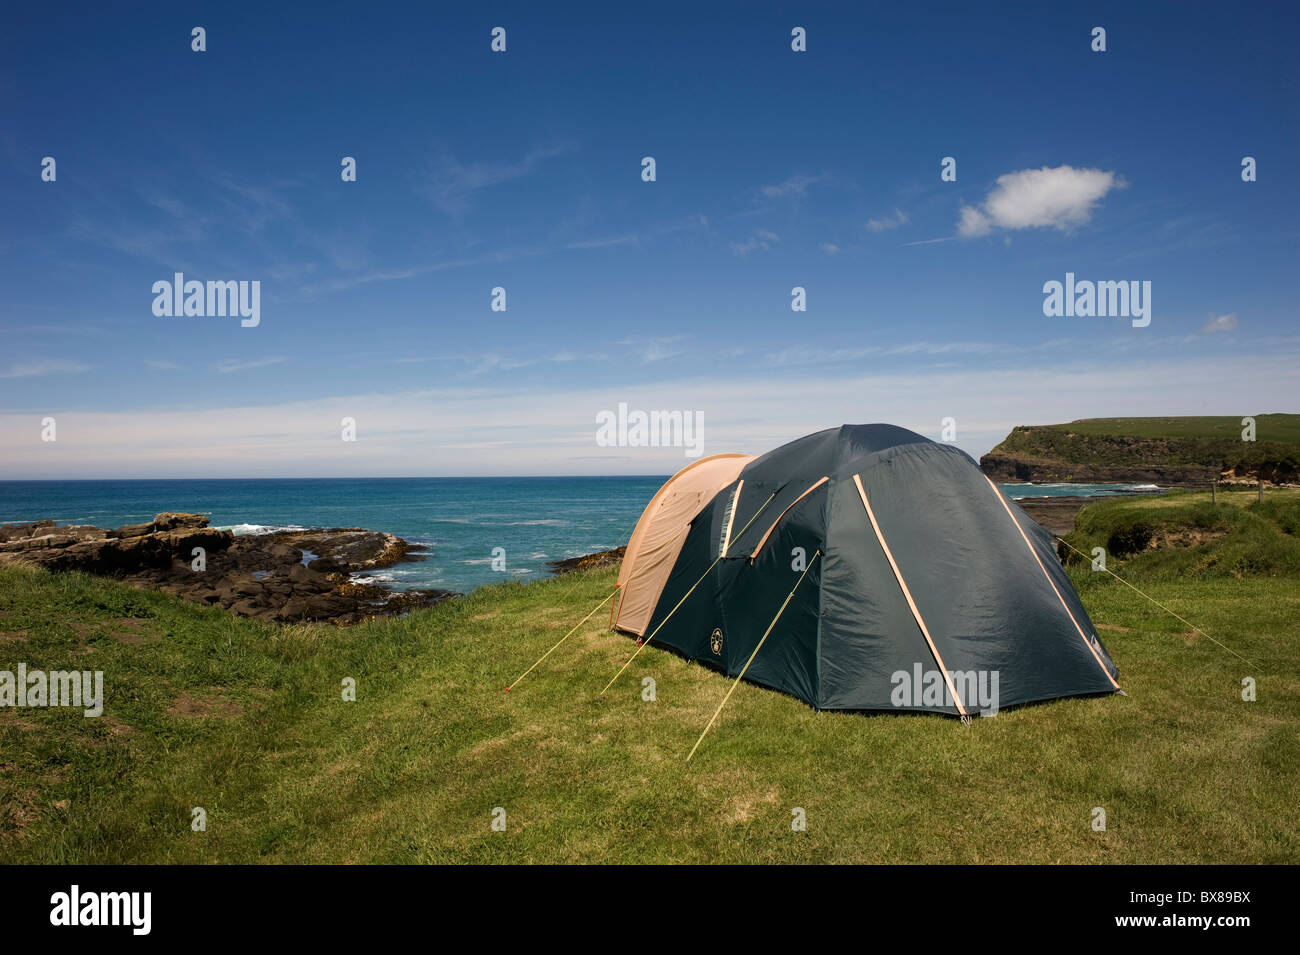 A backpacker's tent looks out over Curio Bay's petrified forest at low tide at the campsite at Curio Bay, - Stock Image